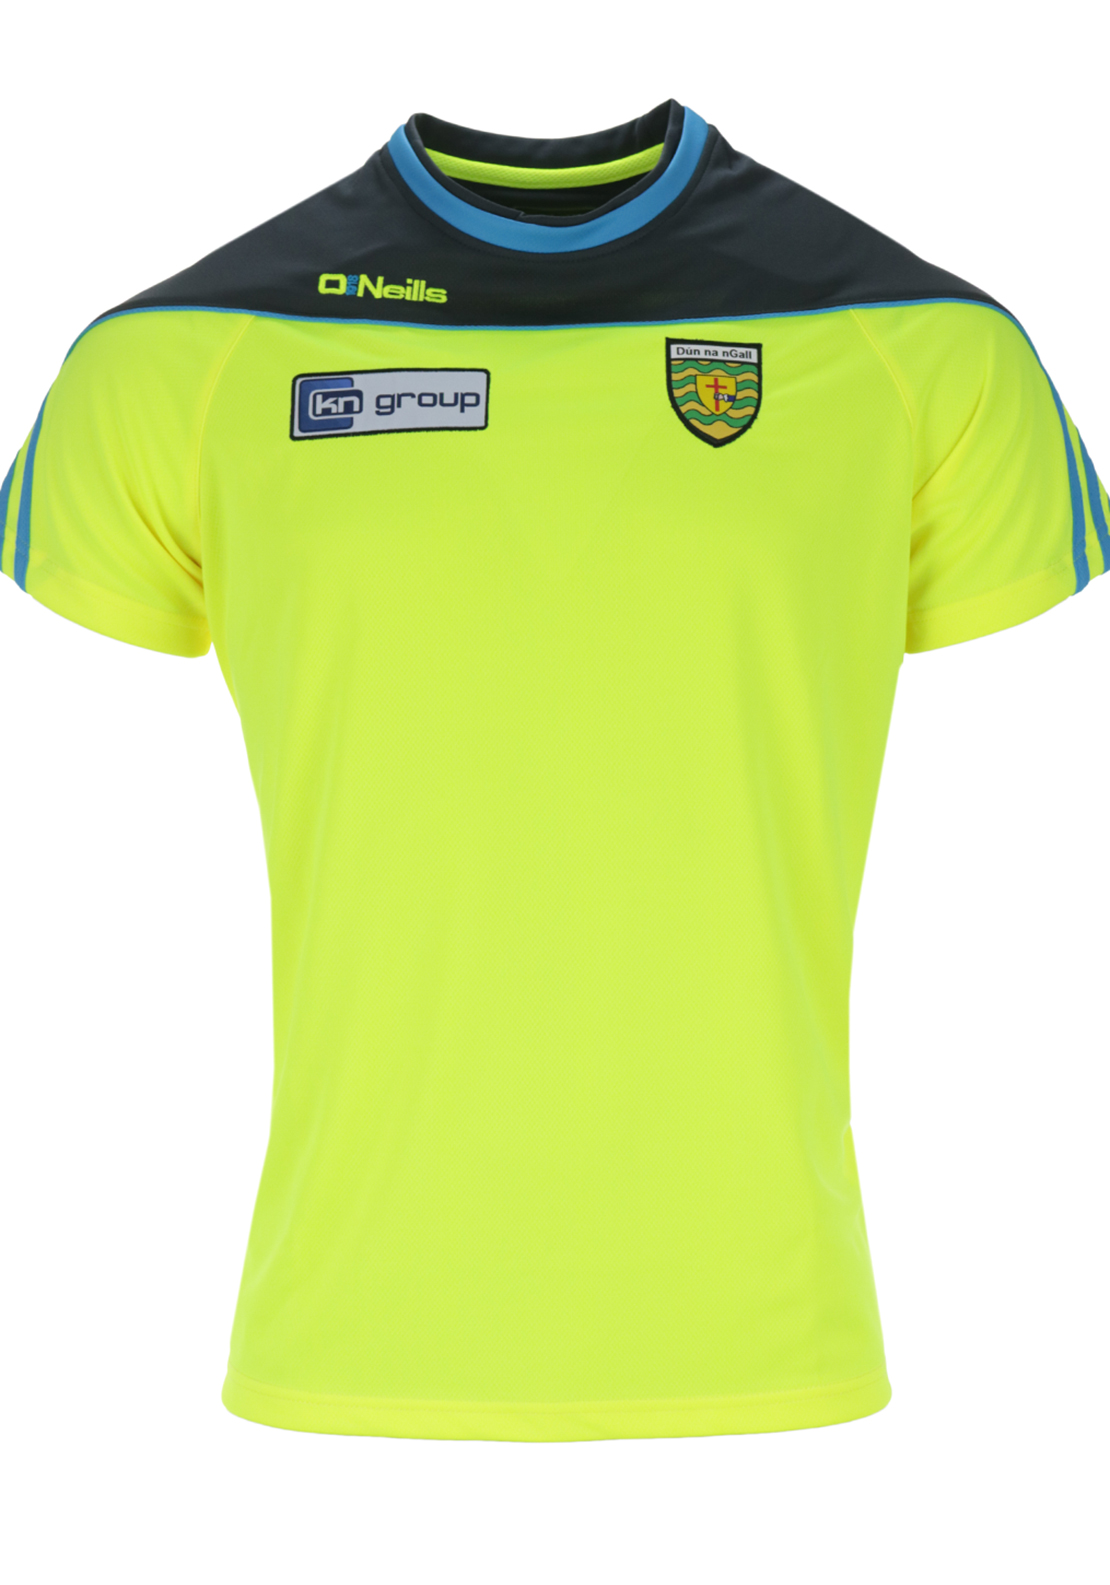 O'Neills Donegal GAA Parnell T-Shirt, Yellow and Grey